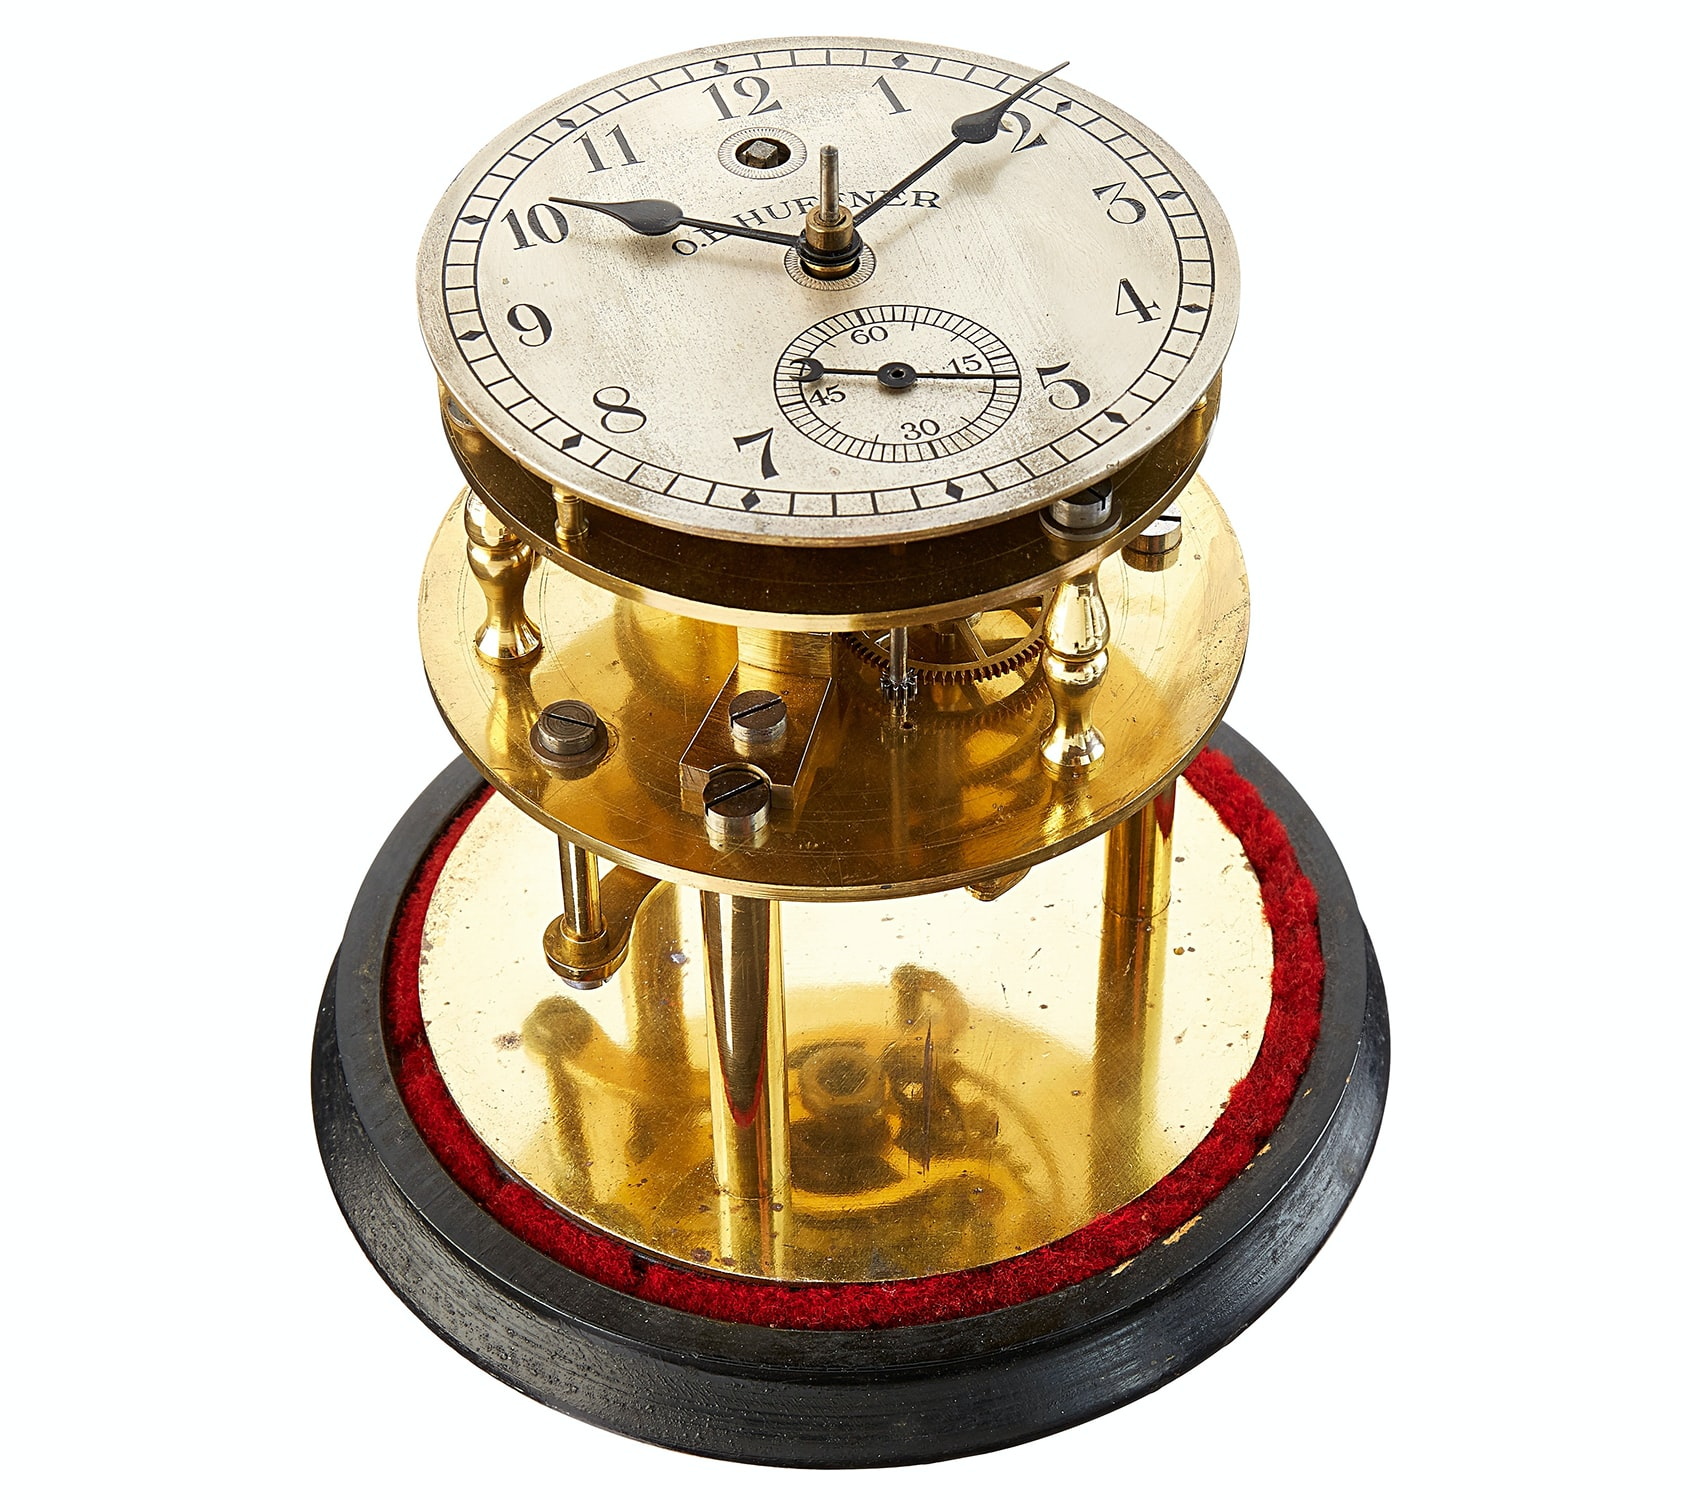 Found: A Captivating Collection Of Escapement Models At Heritage Auction's May 26th Sale Found: A Captivating Collection Of Escapement Models At Heritage Auction's May 26th Sale v2